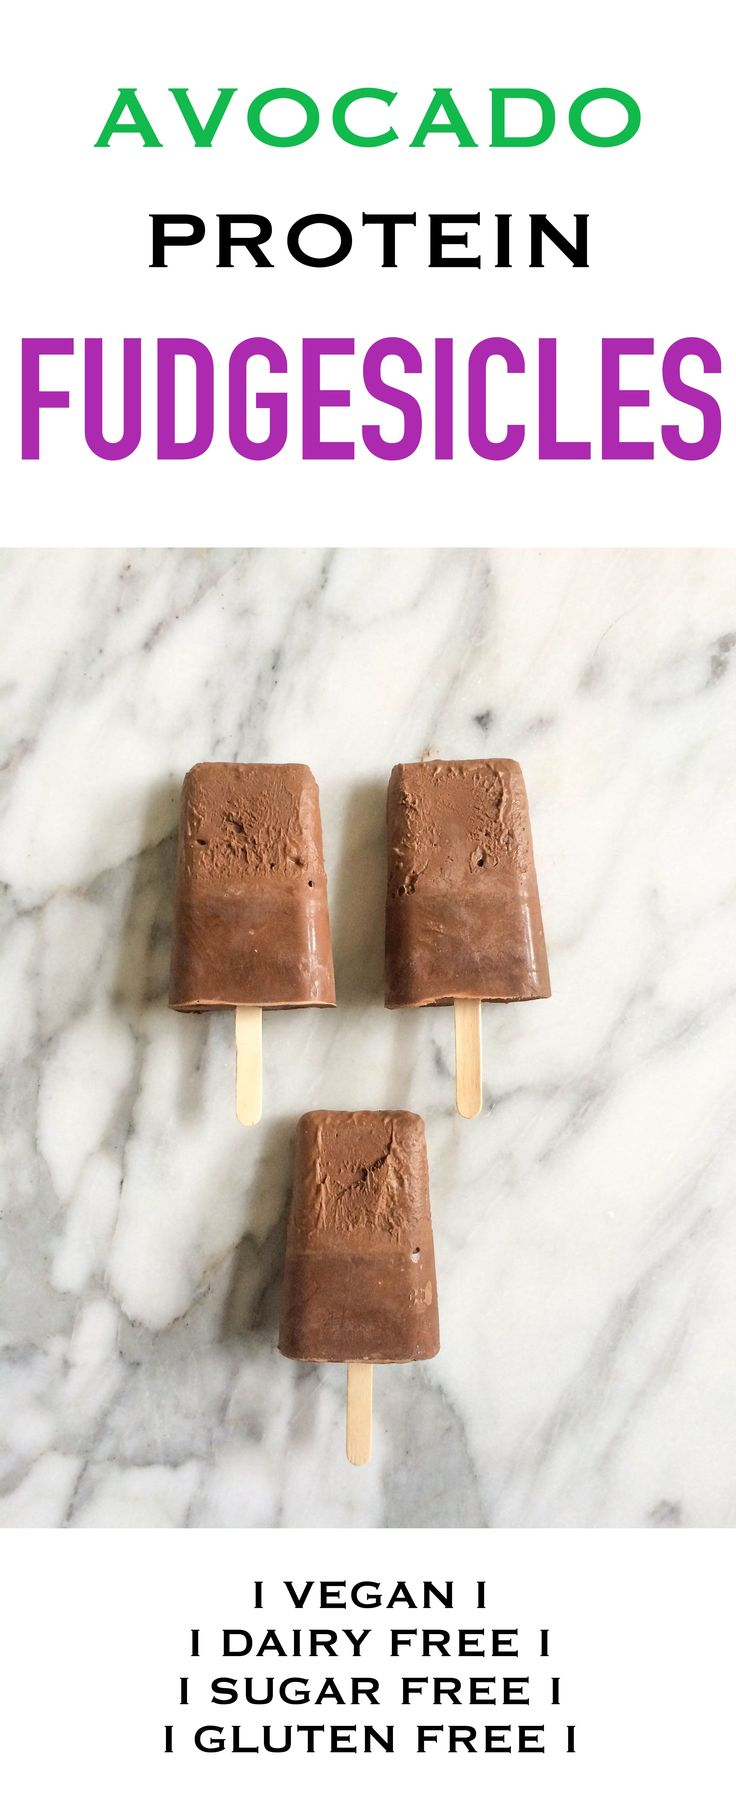 Healthy Avocado Protein Fudgesicles that are gluten free, dairy free, vegan and sugar free.